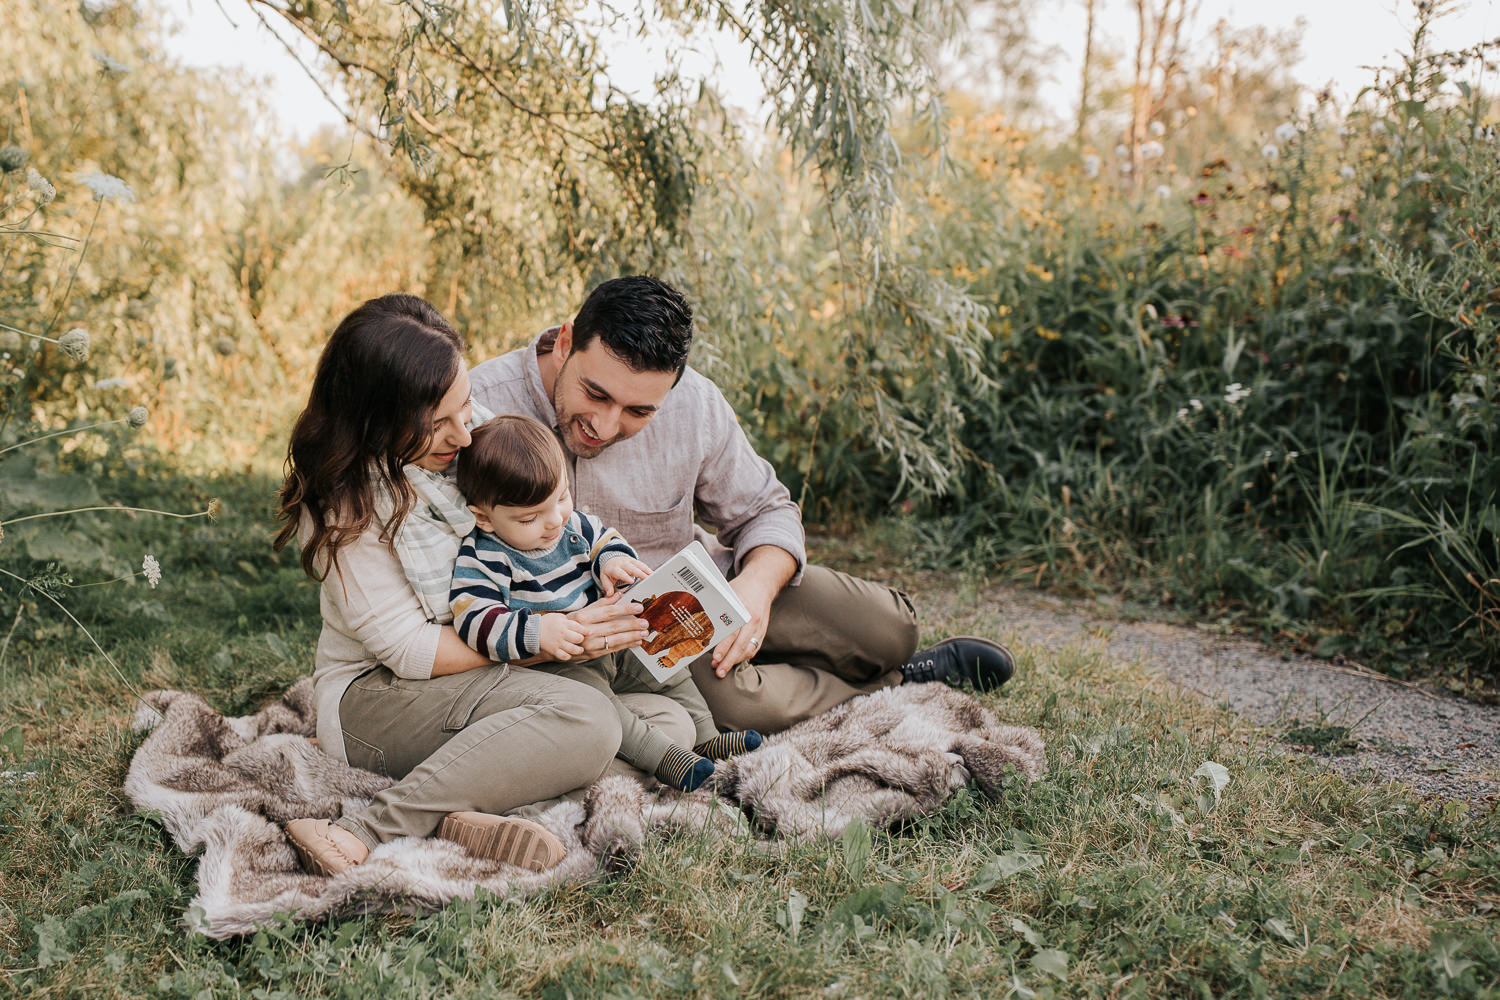 family of 3 sitting on fur blanket under willow tree at sunset, 1 year old baby boy sitting on mom's lap reading story, dad next to them smiling down at son - Newmarket Lifestyle Photography